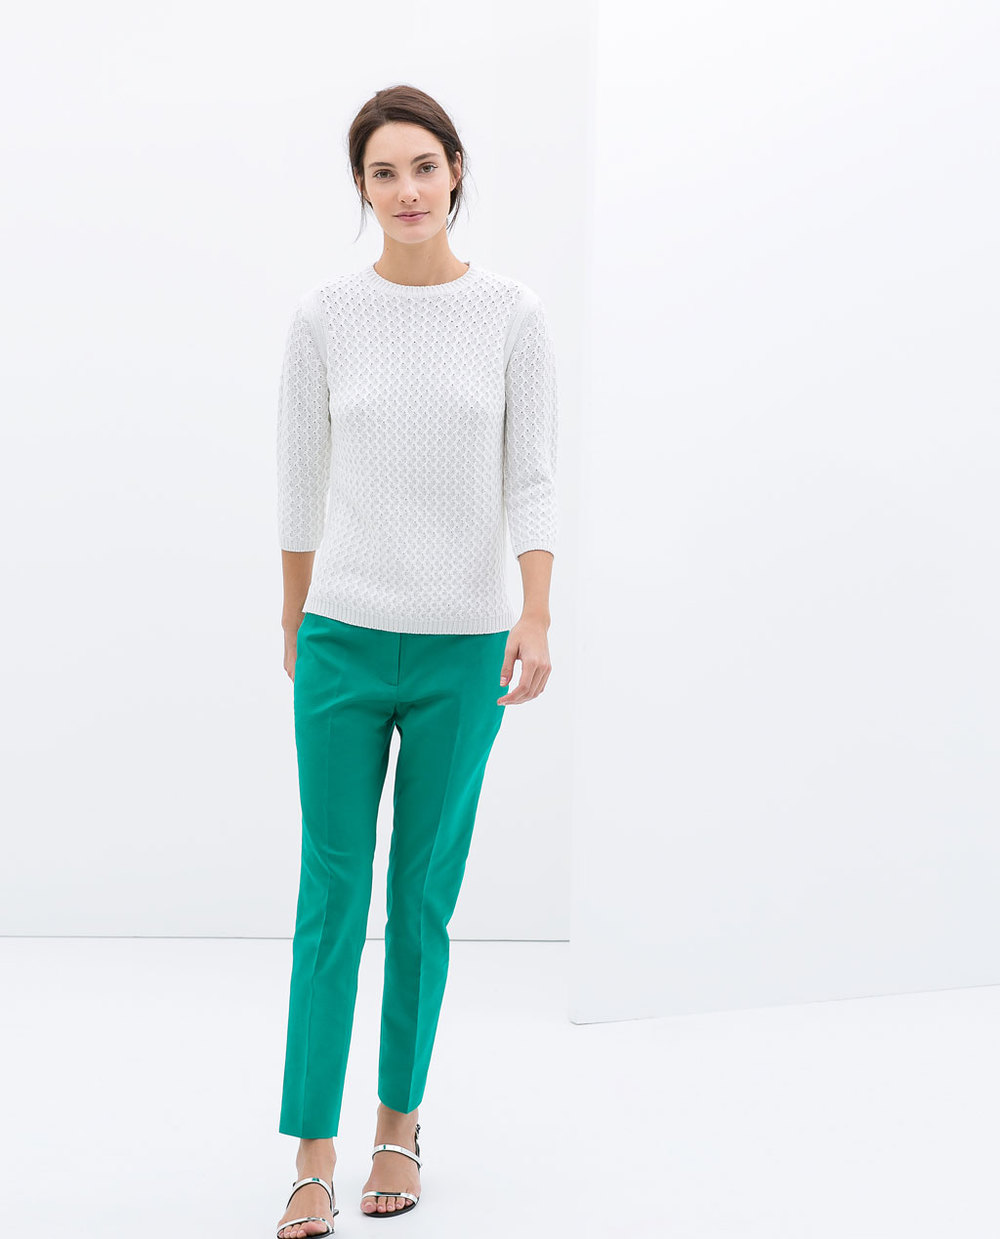 Trousers. Available in red, khaki, green. Zara. $59.90.